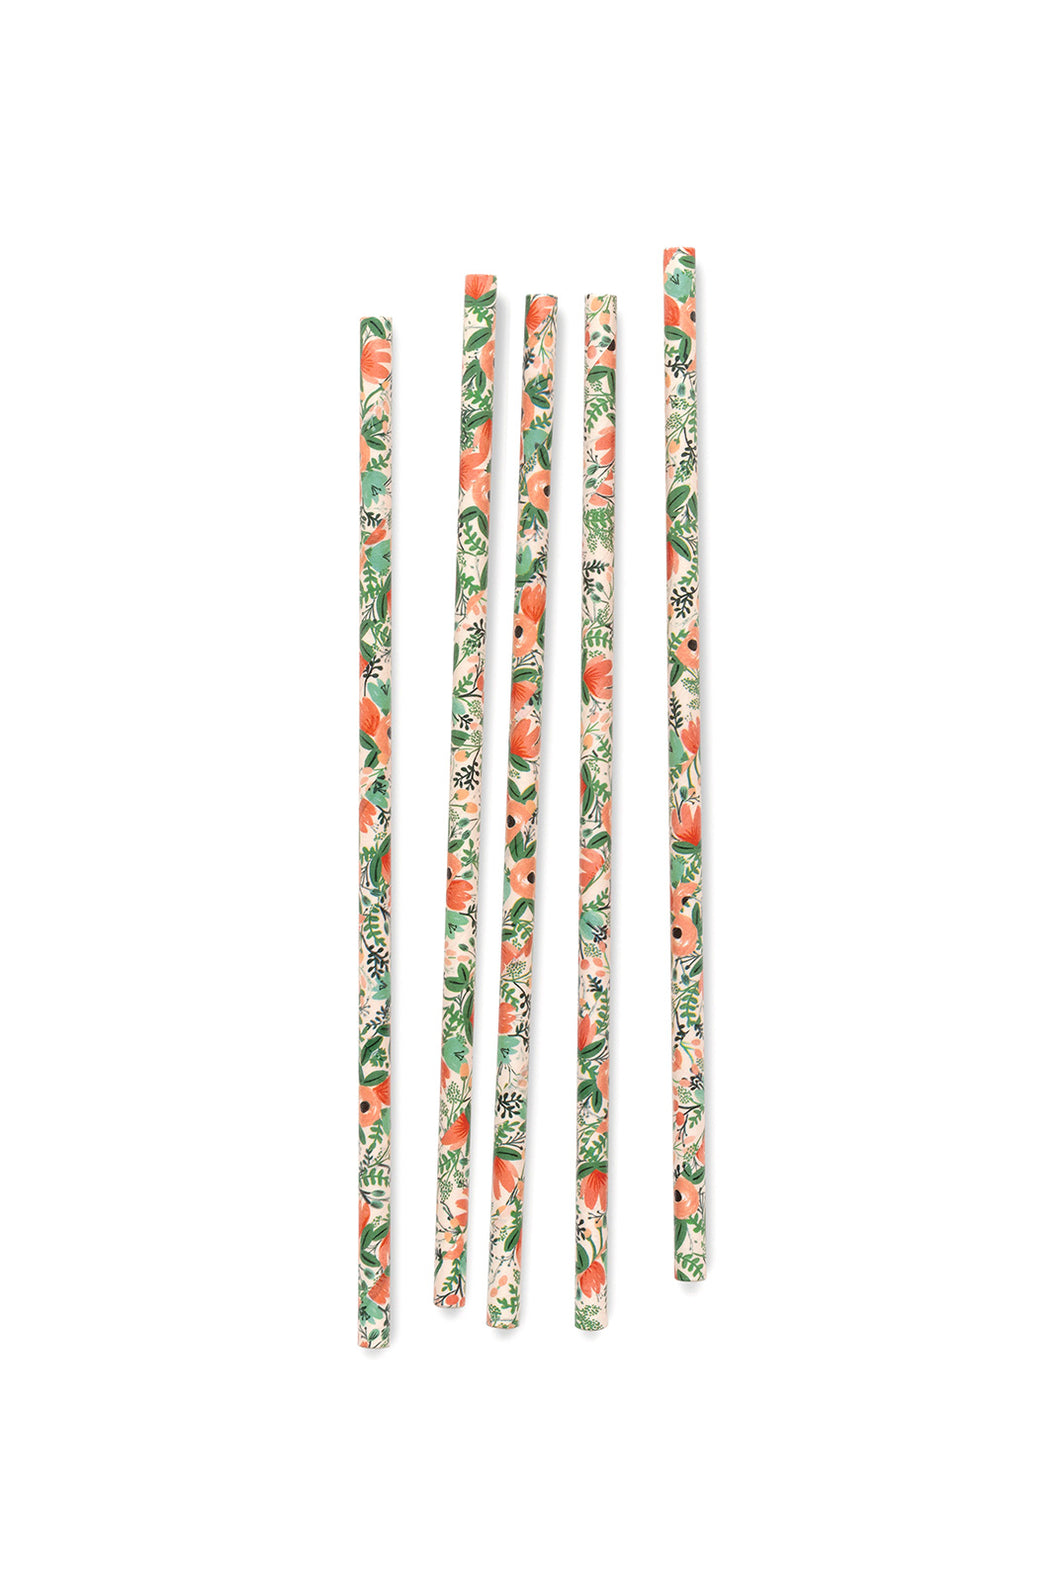 Rifle Paper Co - Paper Straws - Set of 25 - Wild Rose